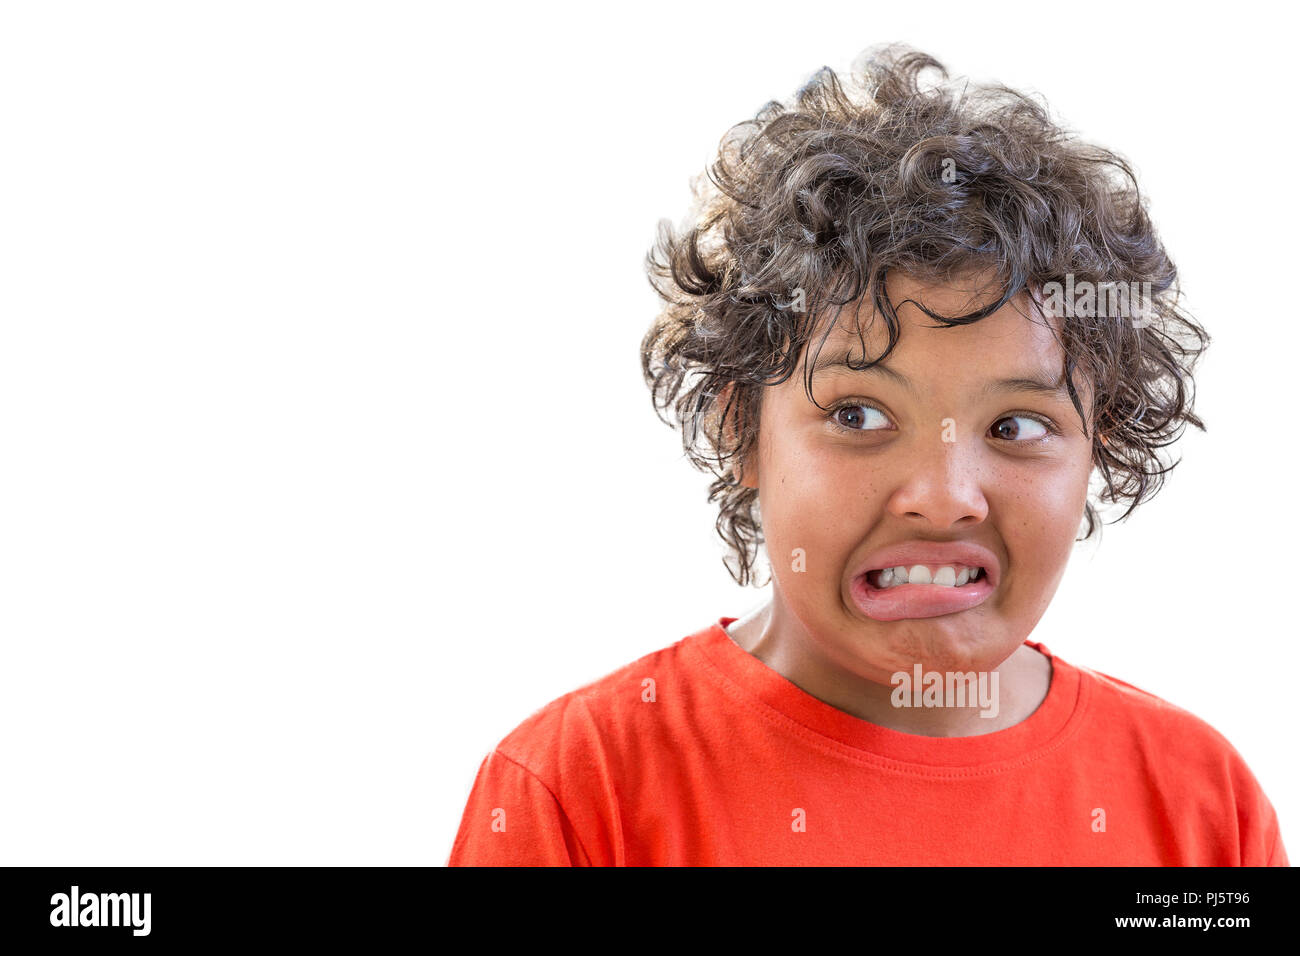 portrait of young grimacing boy isolated on white background - Stock Image